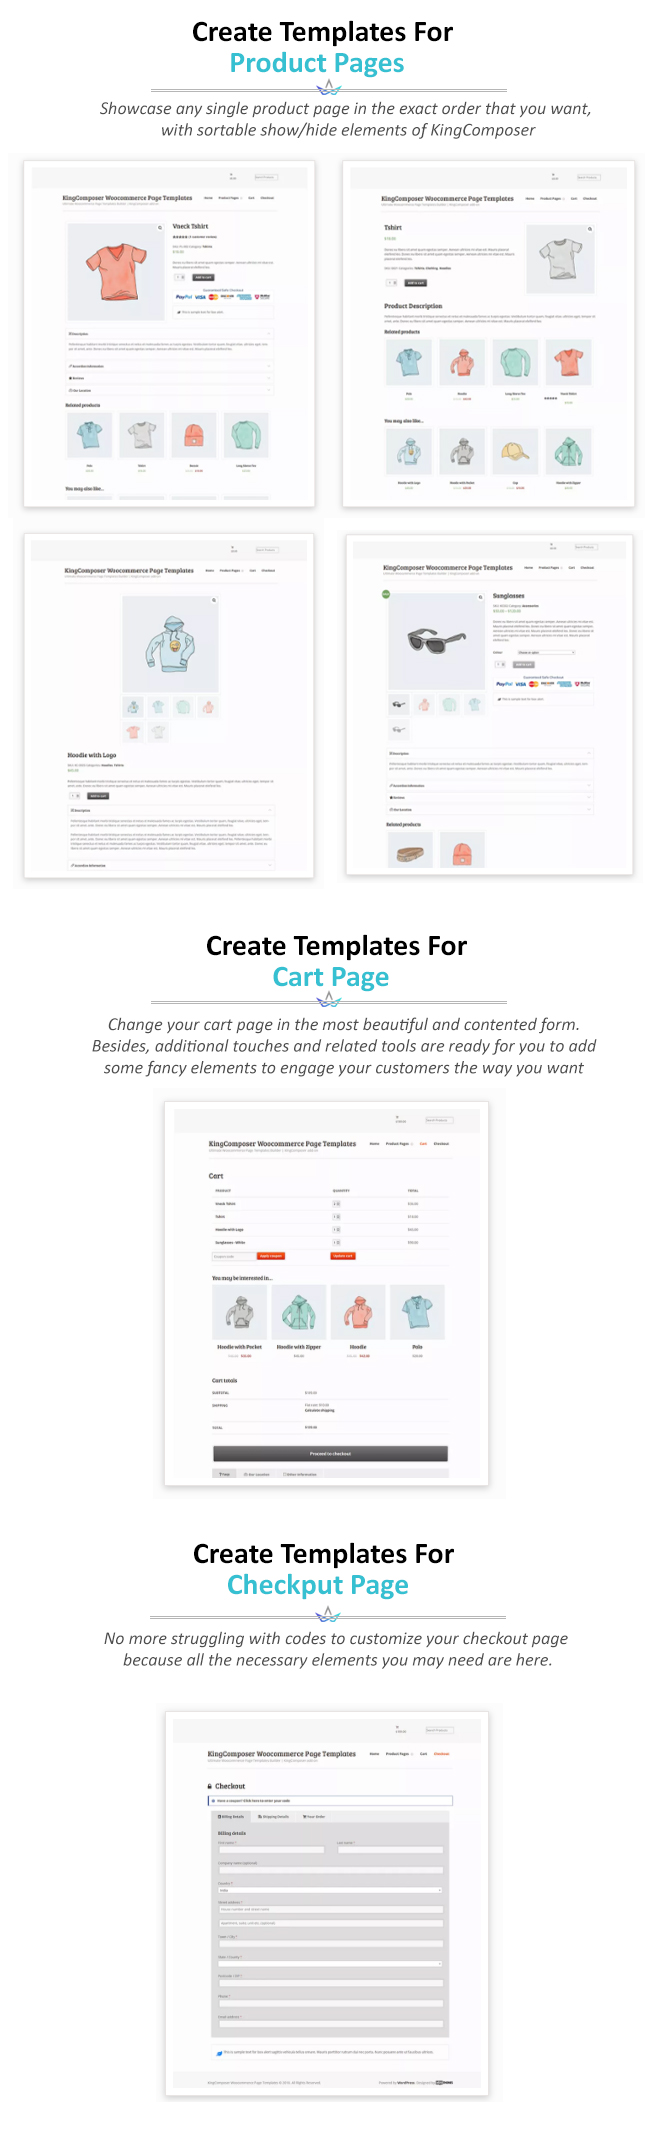 Ultimate Woocommerce Page Templates Builder | KingComposer add-on - 1